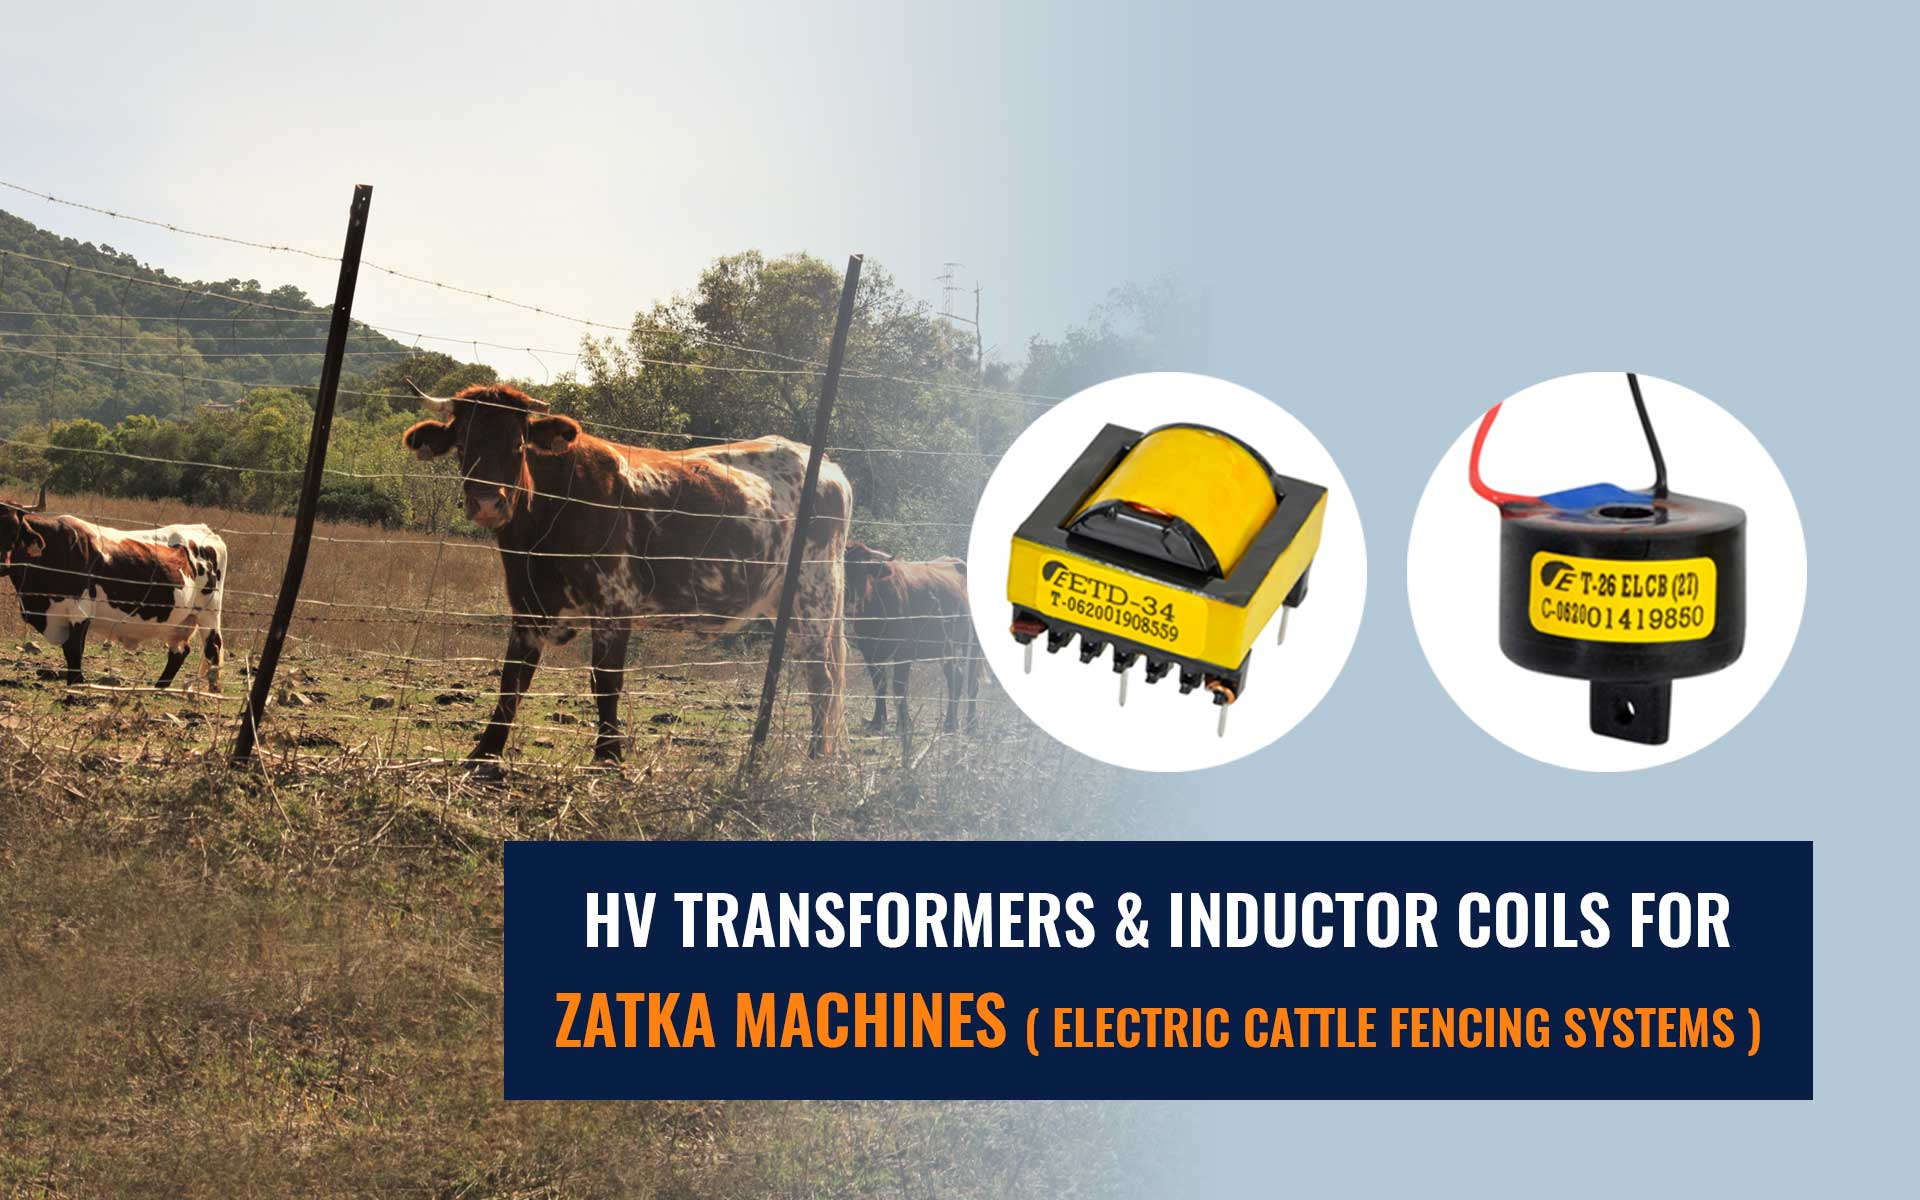 HV Transformers & Inductor Coils for Zatka Machines